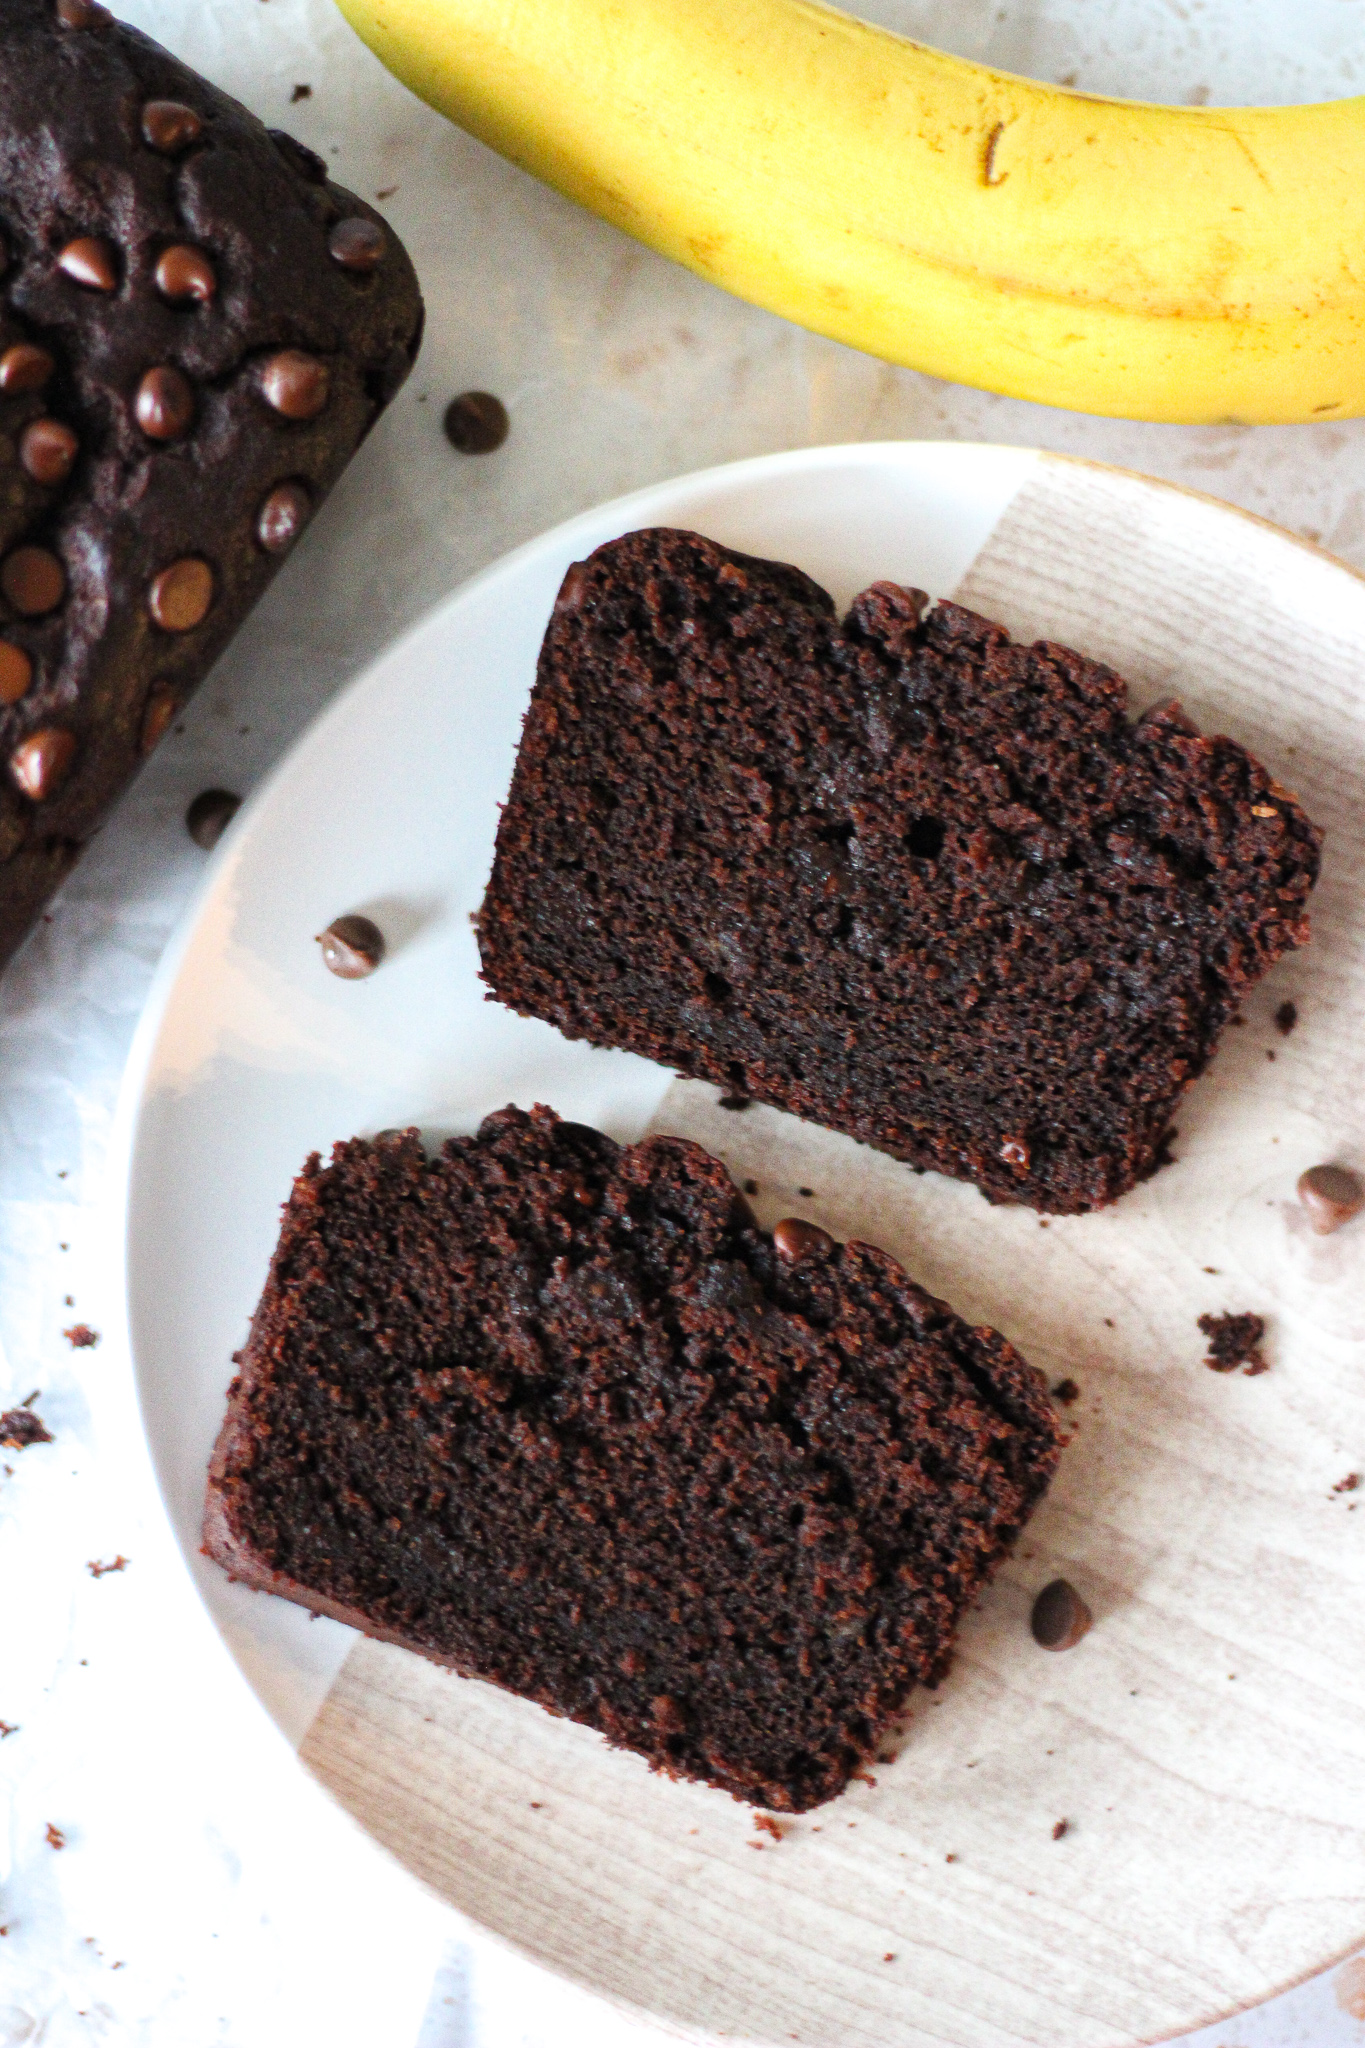 overhead view of two slices of chocolate banana loaf cake on a small plate